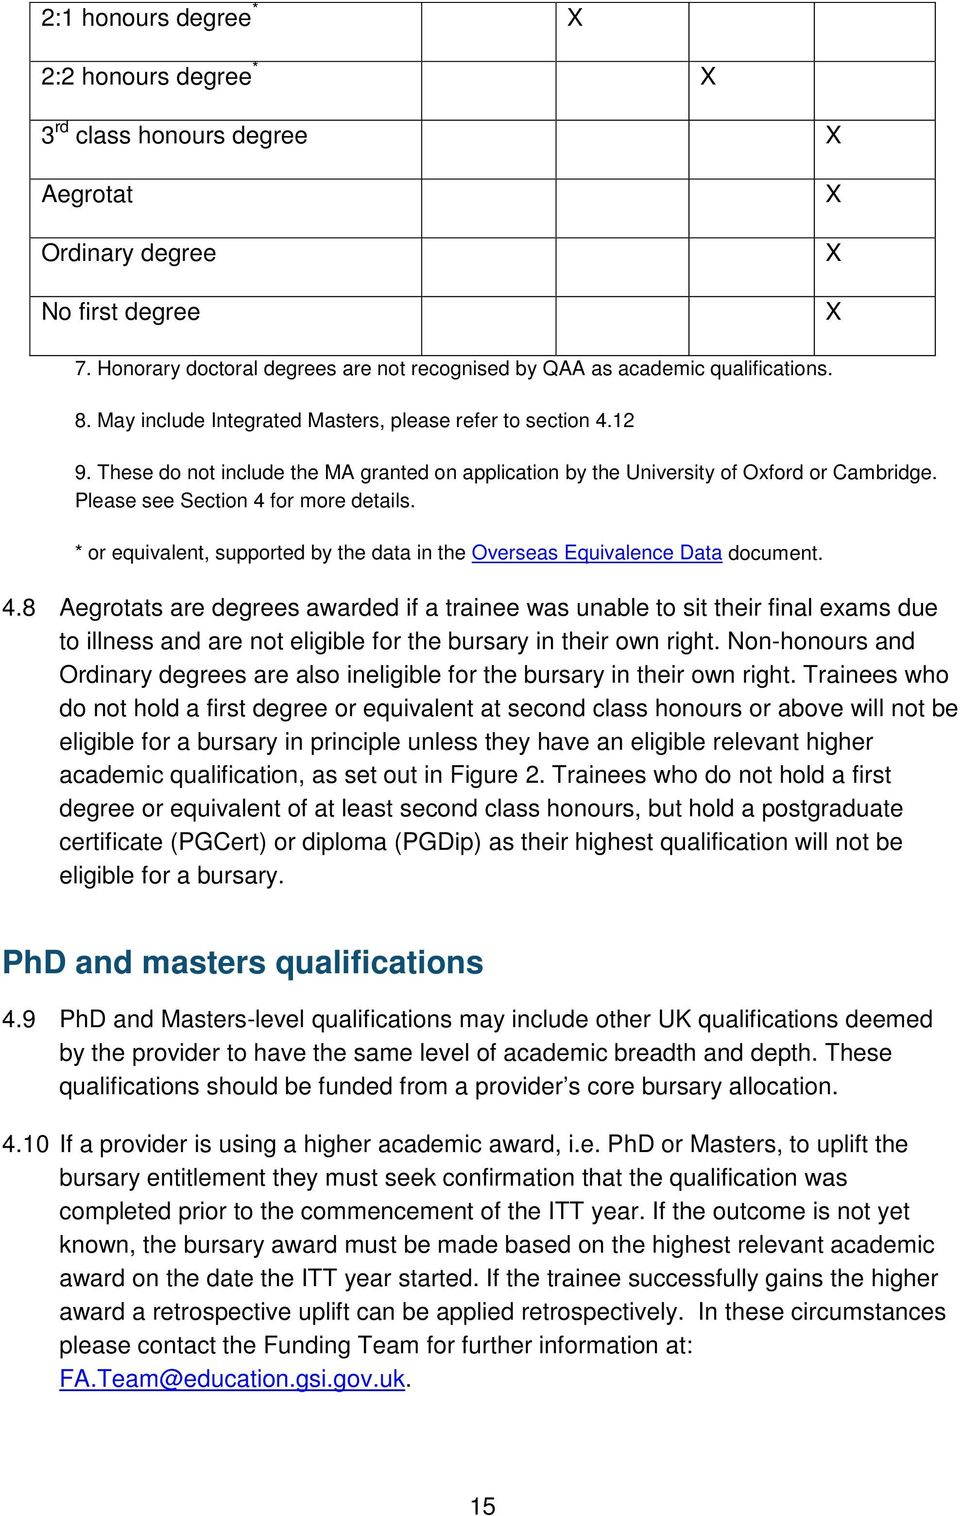 These do not include the MA granted on application by the University of Oxford or Cambridge. Please see Section 4 for more details.